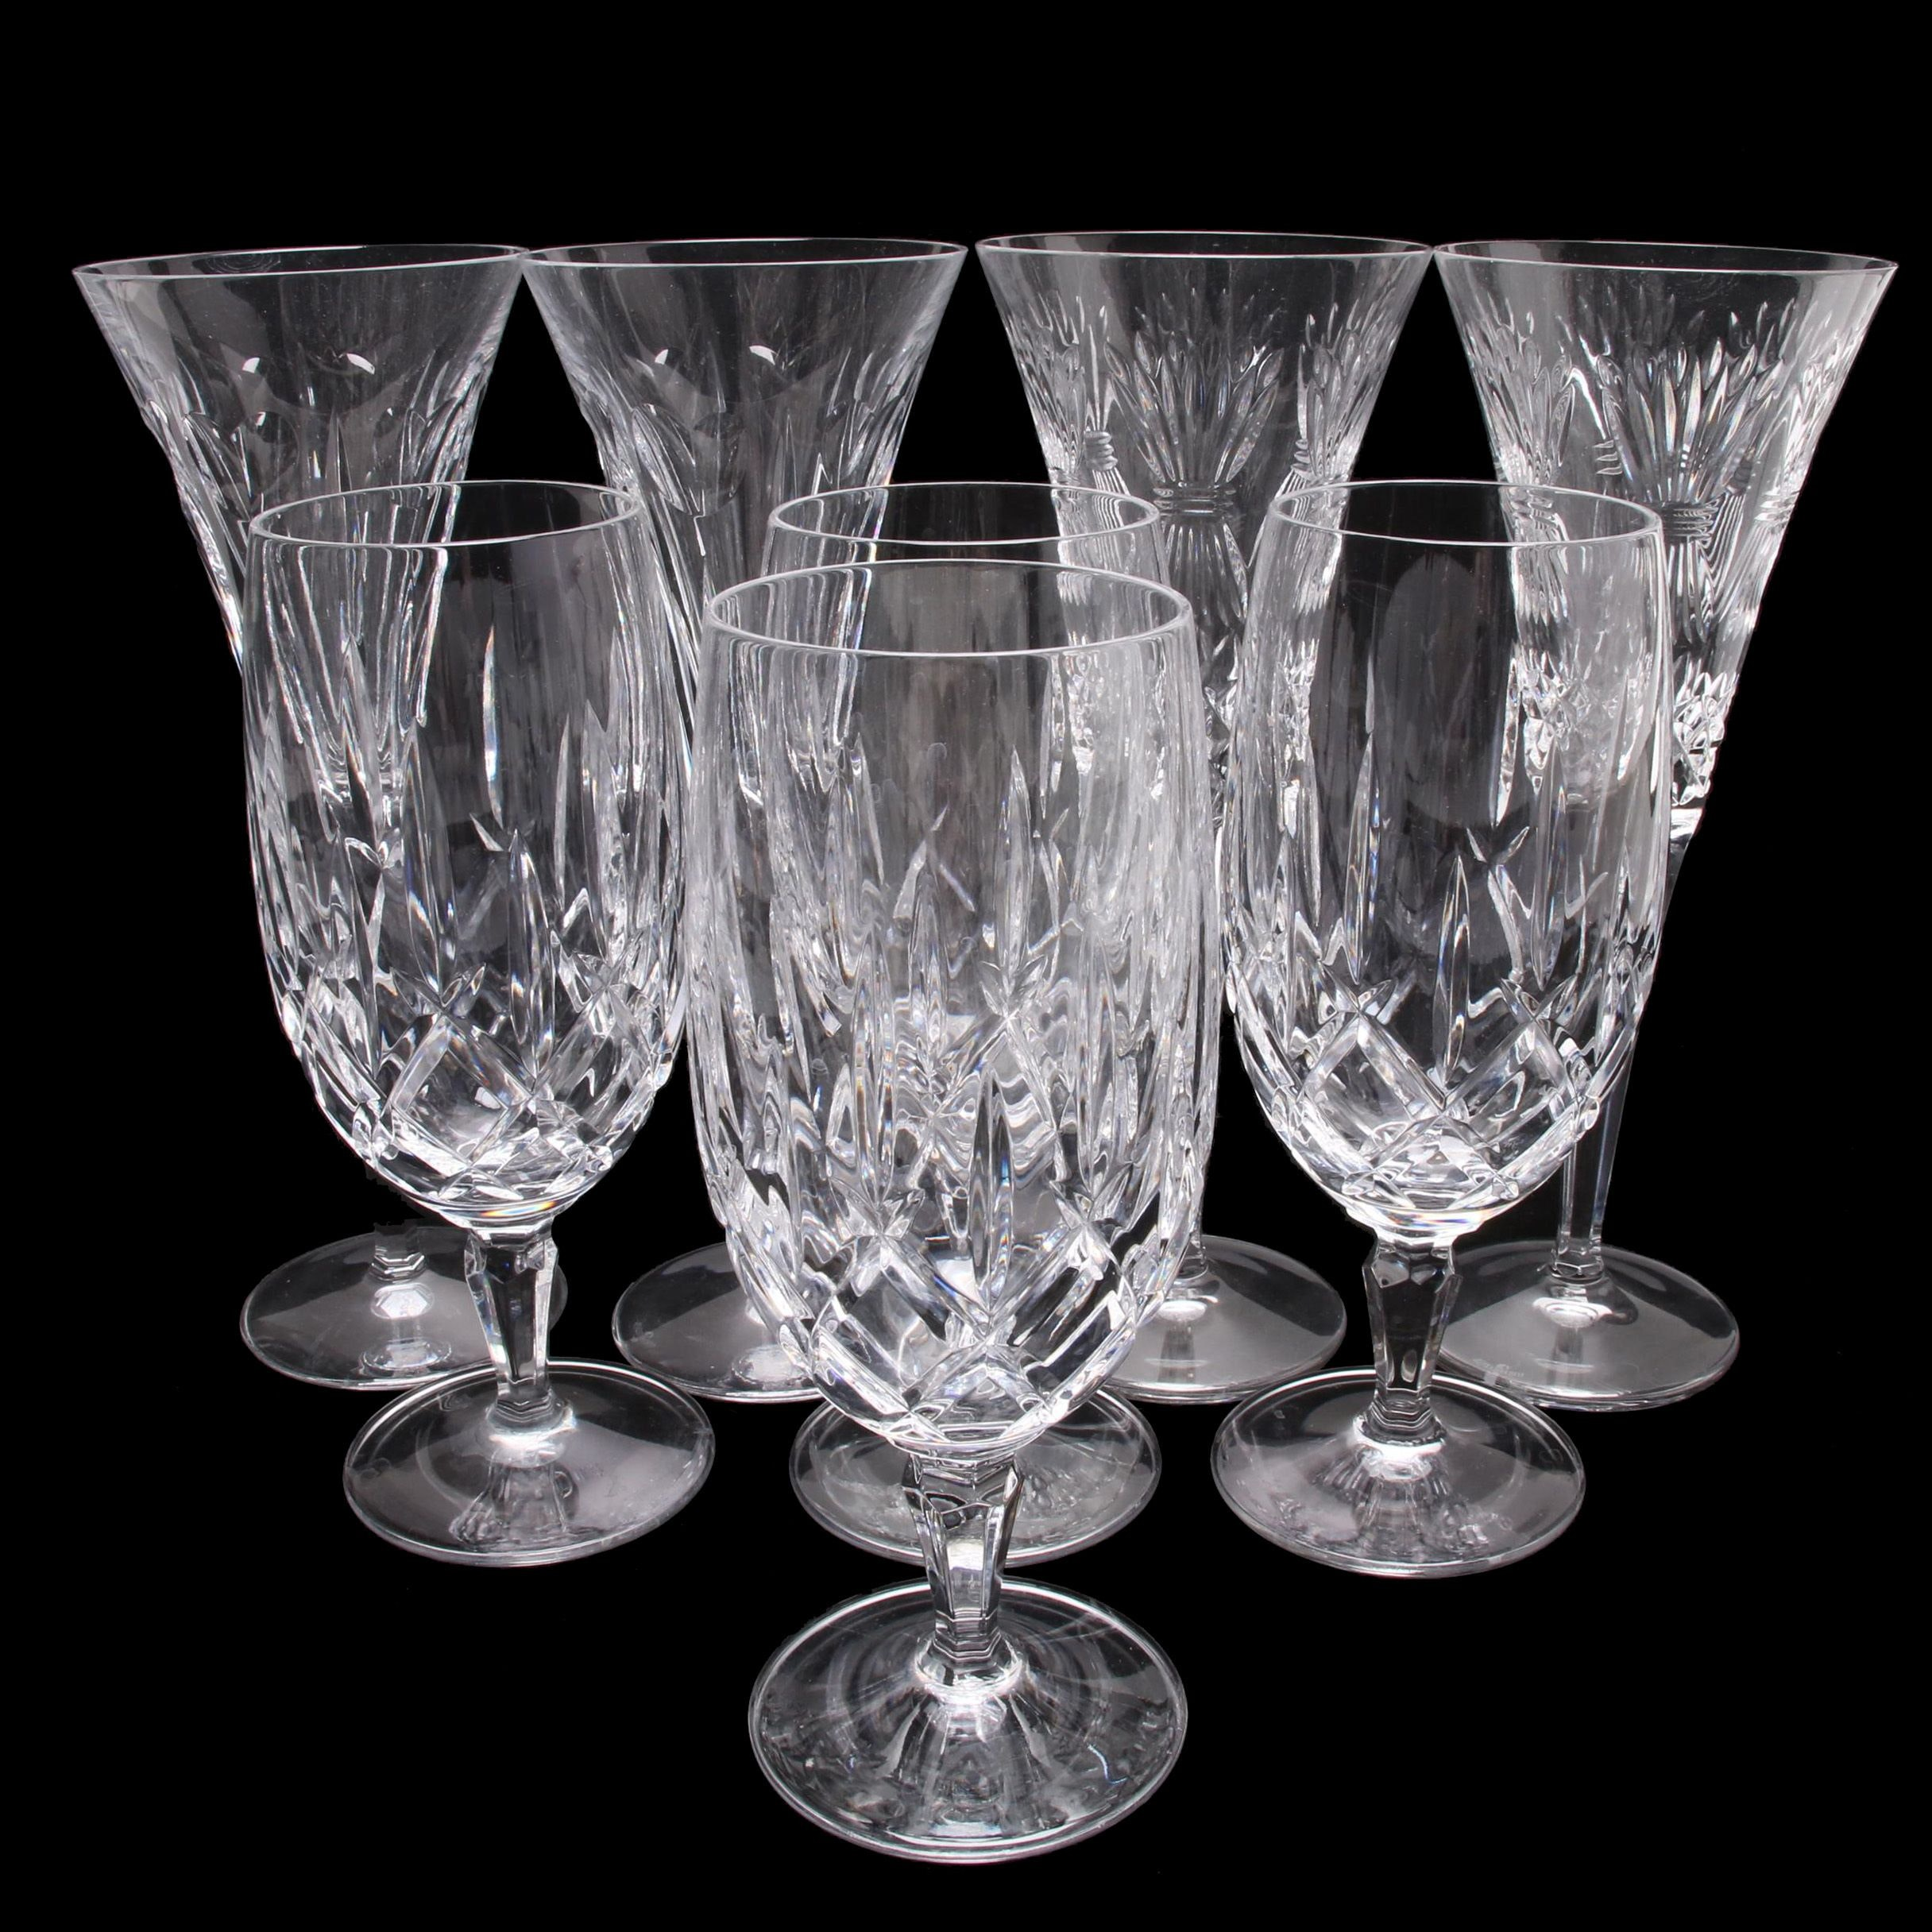 Waterford Crystal Millennium Toasting Flutes and Gorham Crystal Water Goblets